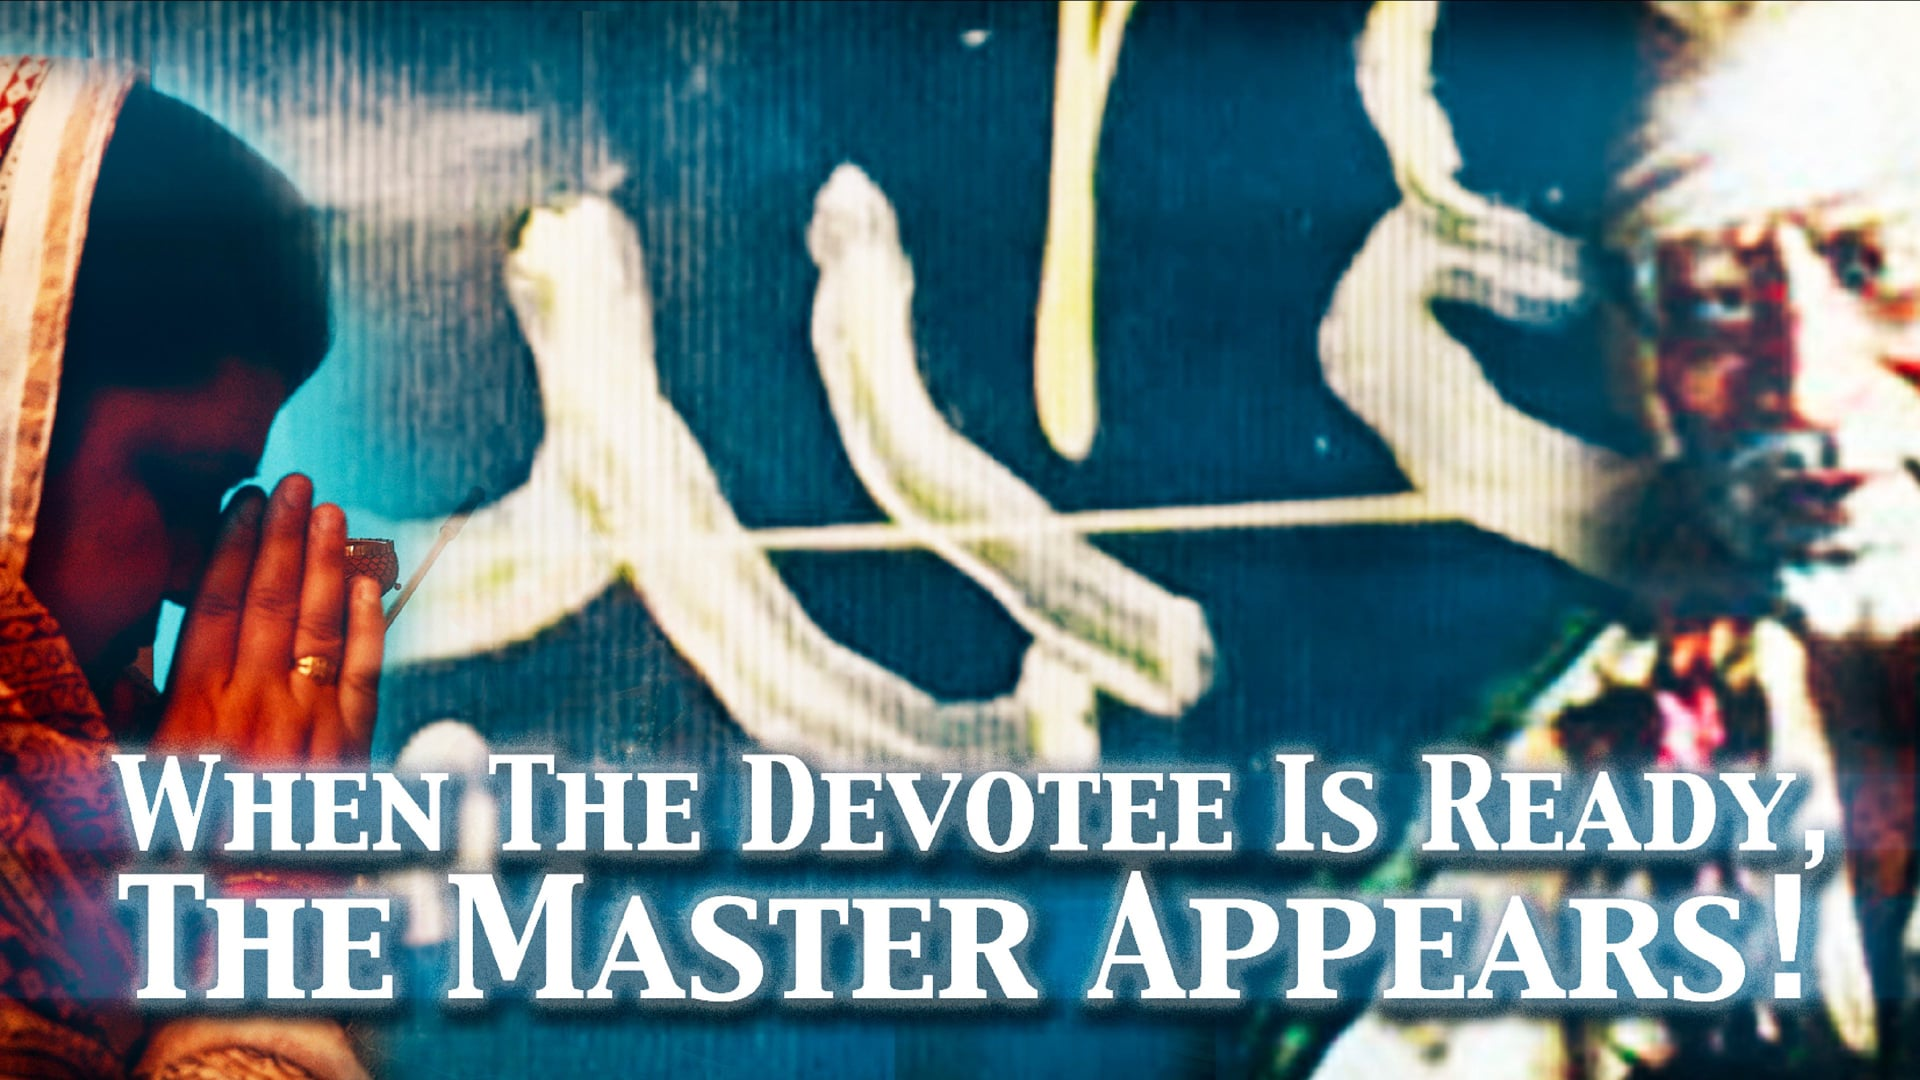 When the devotee is ready, the Master appears